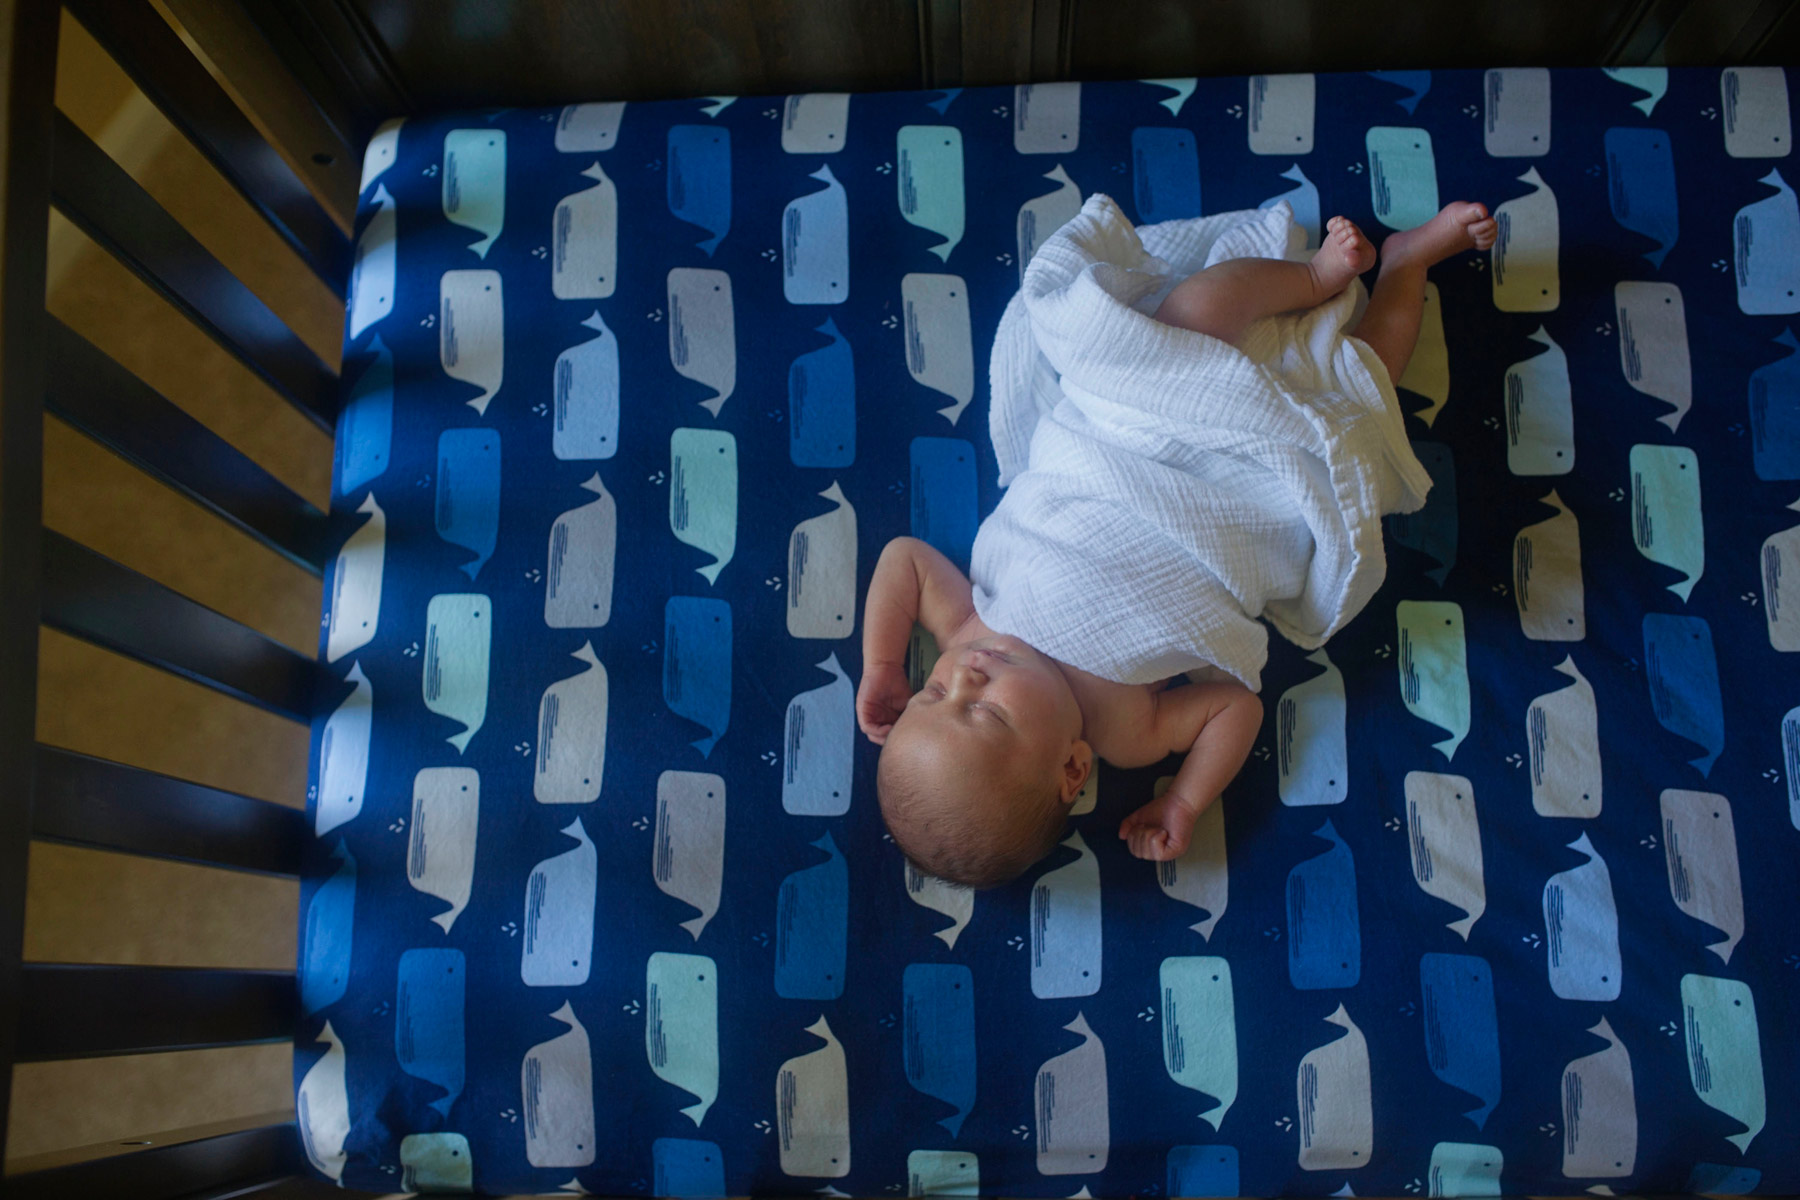 Main_Line_Newborn_photographer_Lifestyle_newborn_photographer03_baby_swaddled_in_crib.JPG